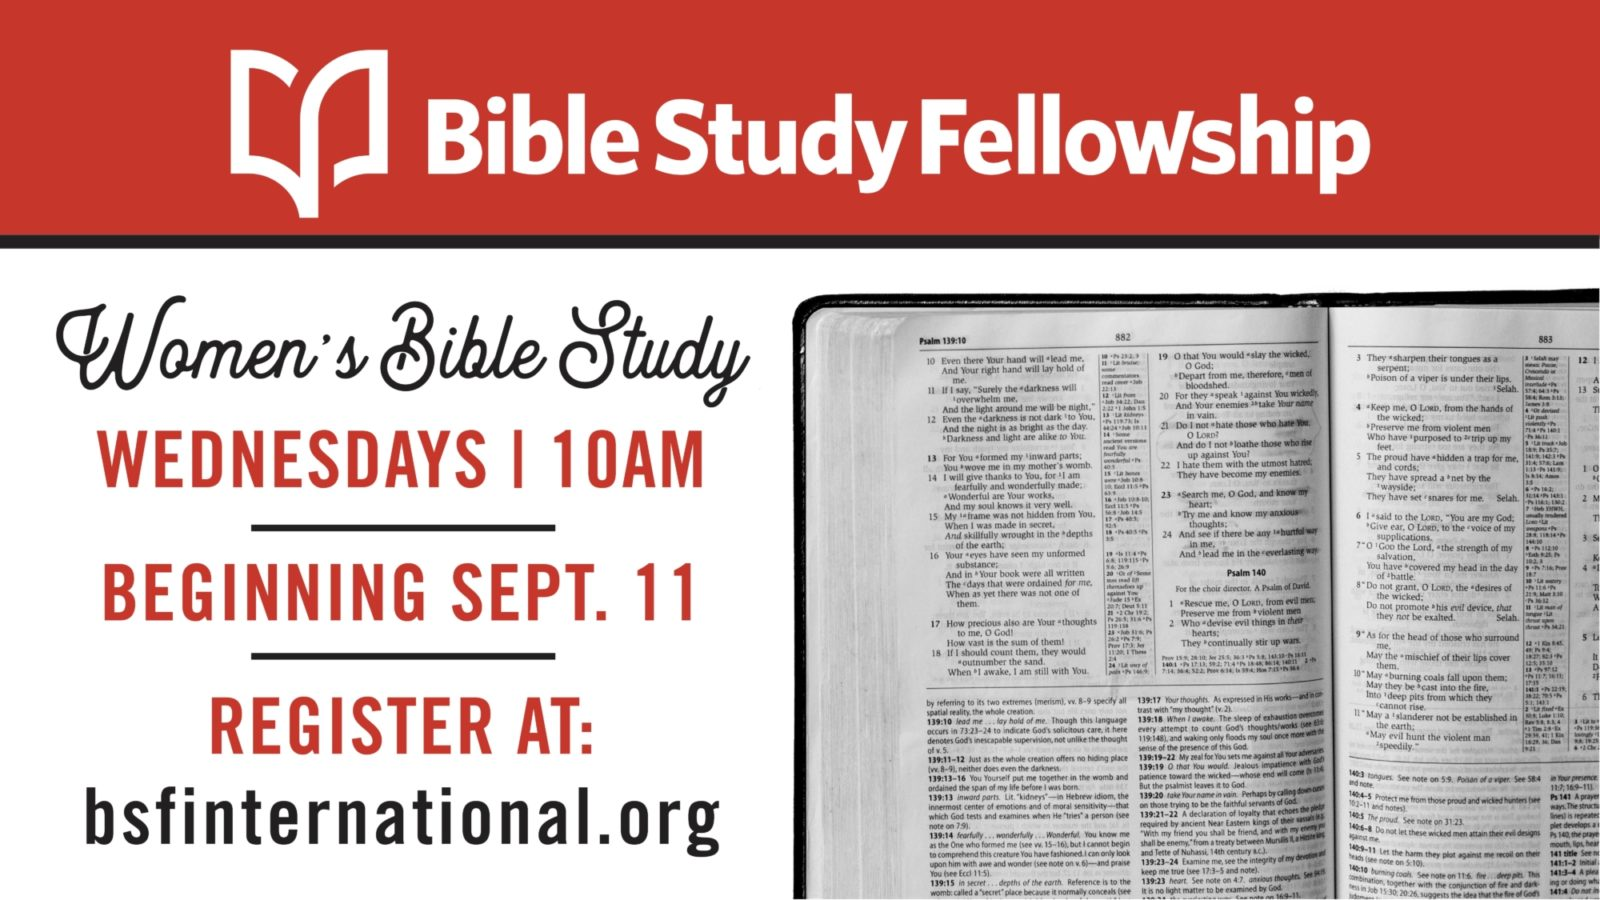 Women's Bible Study Fellowship (BSF)